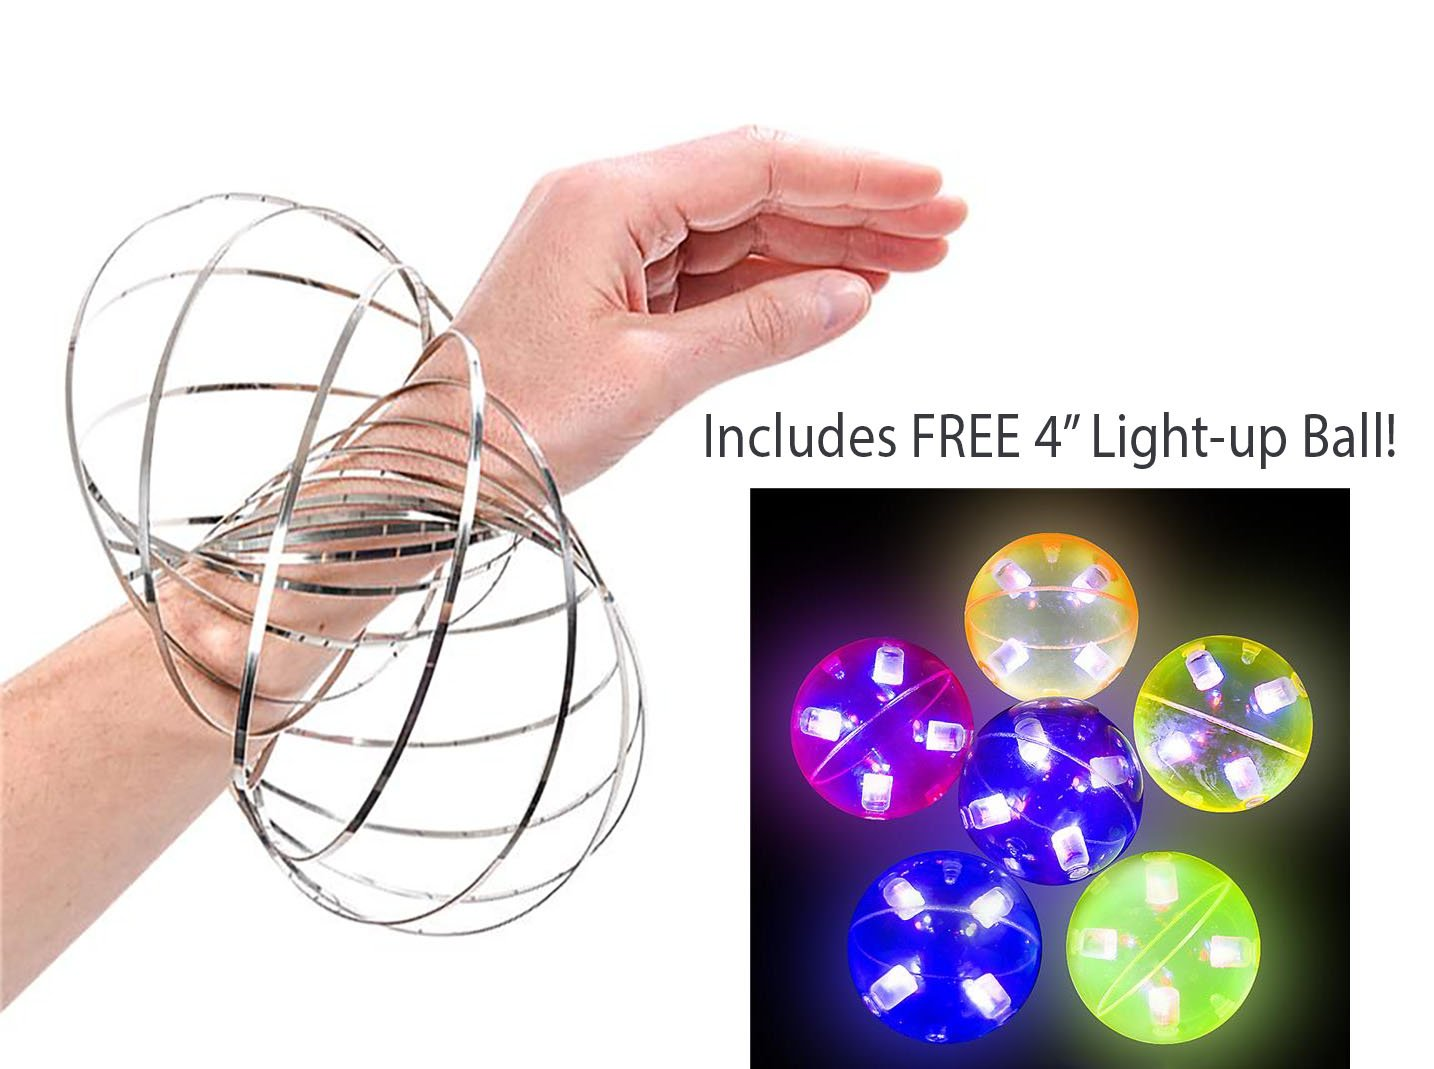 Bottles N Bags Incredible Spiral Flow Ring Kinetic Spring Toy Bracelet in Stainless Silver - Science and Educational Fun for Kids and Adults Alike - Plus FREE 4'' Light-Up High Bounce Ball